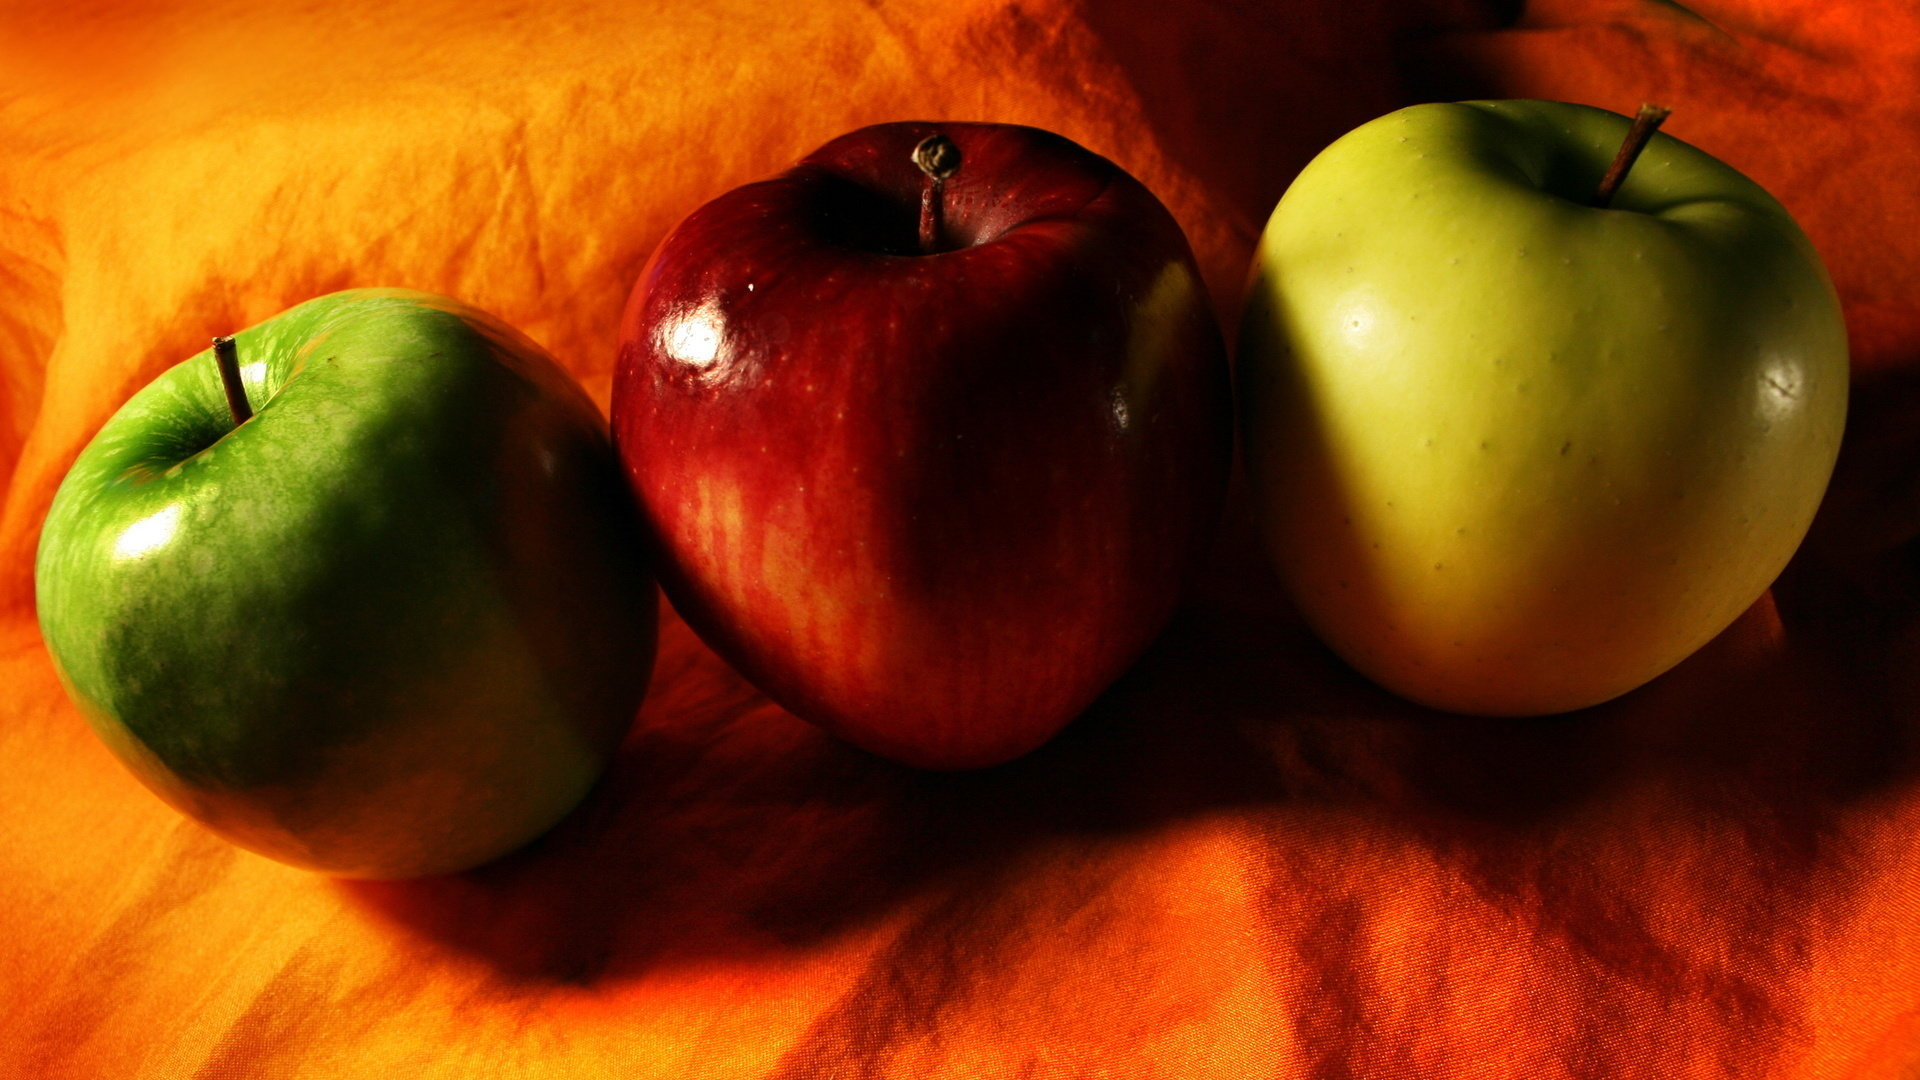 Download full hd 1080p Apple fruit PC wallpaper ID:295954 for free